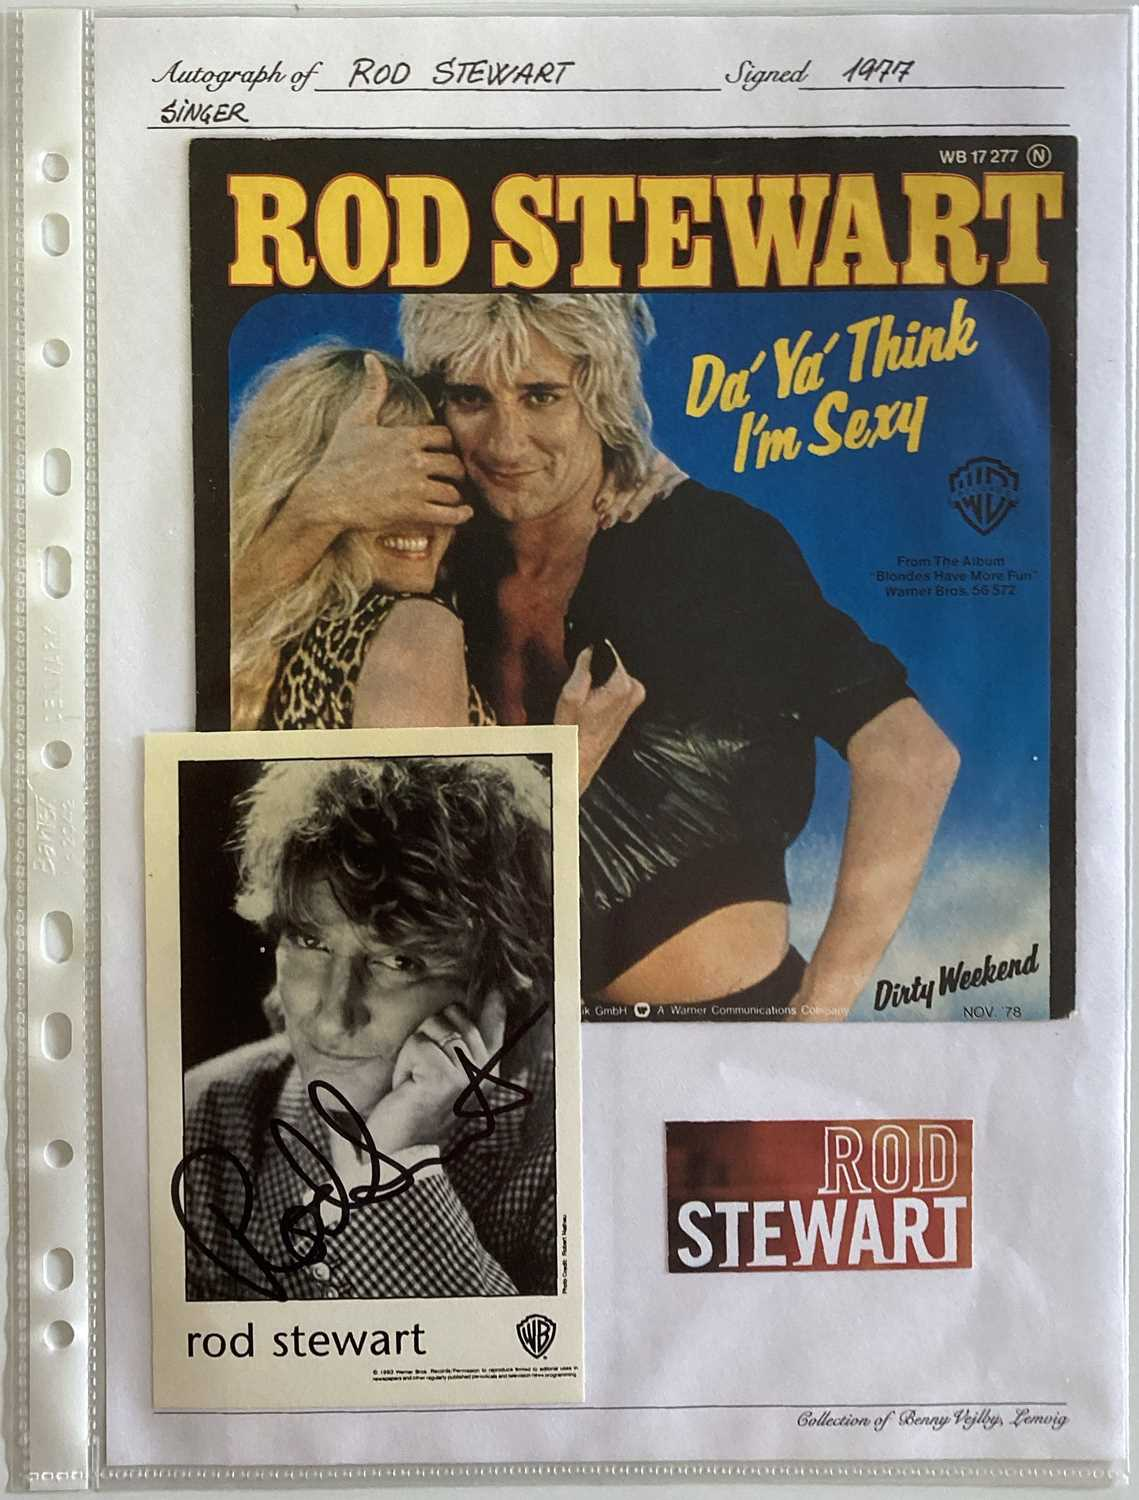 ROCK AND POP STARS SIGNED - MALE STARS. - Image 3 of 3